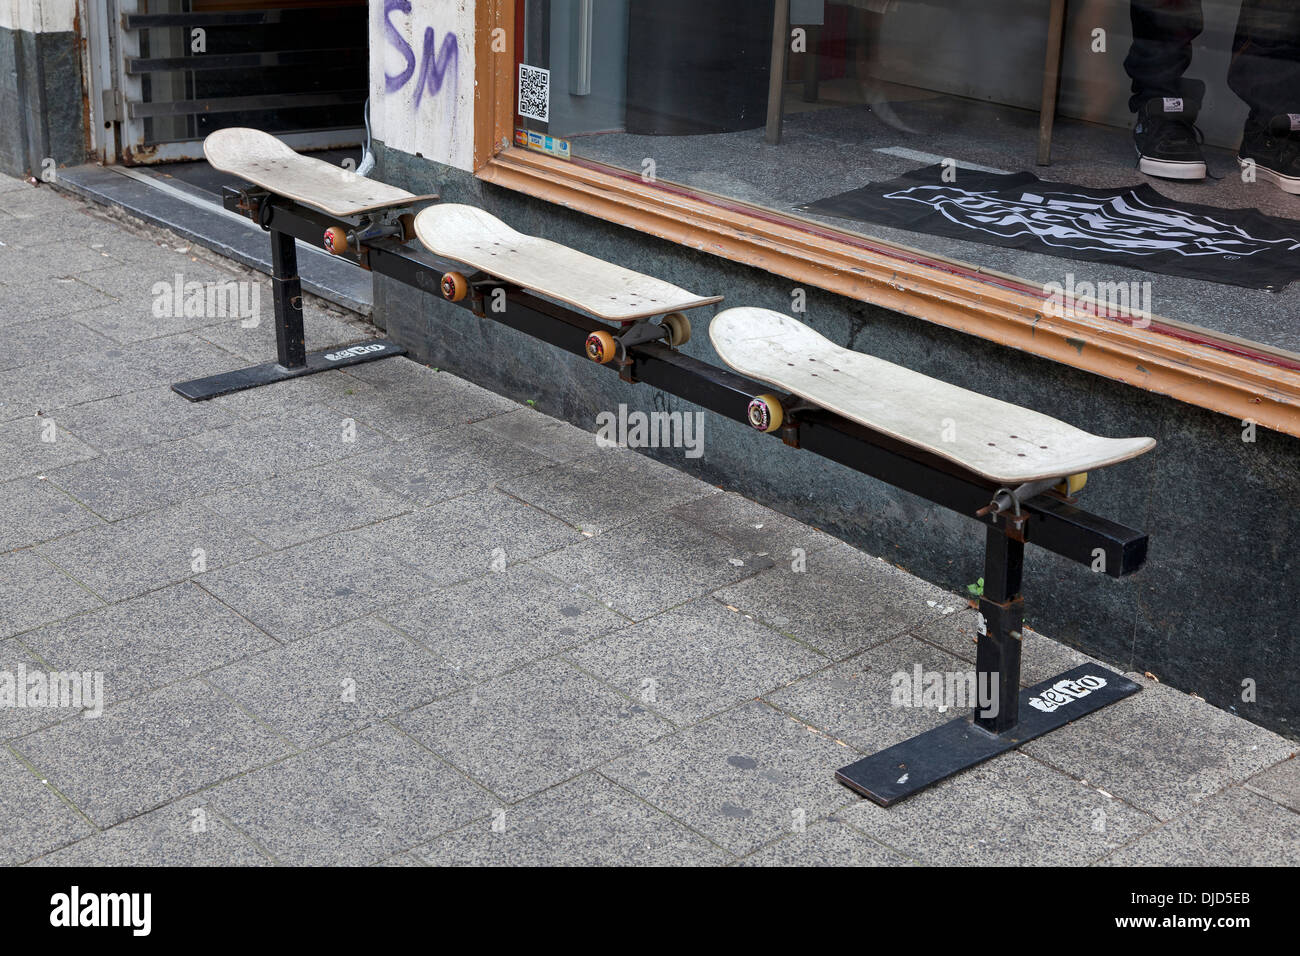 Bench made out of skateboards for a shop in Amsterdam - Stock Image